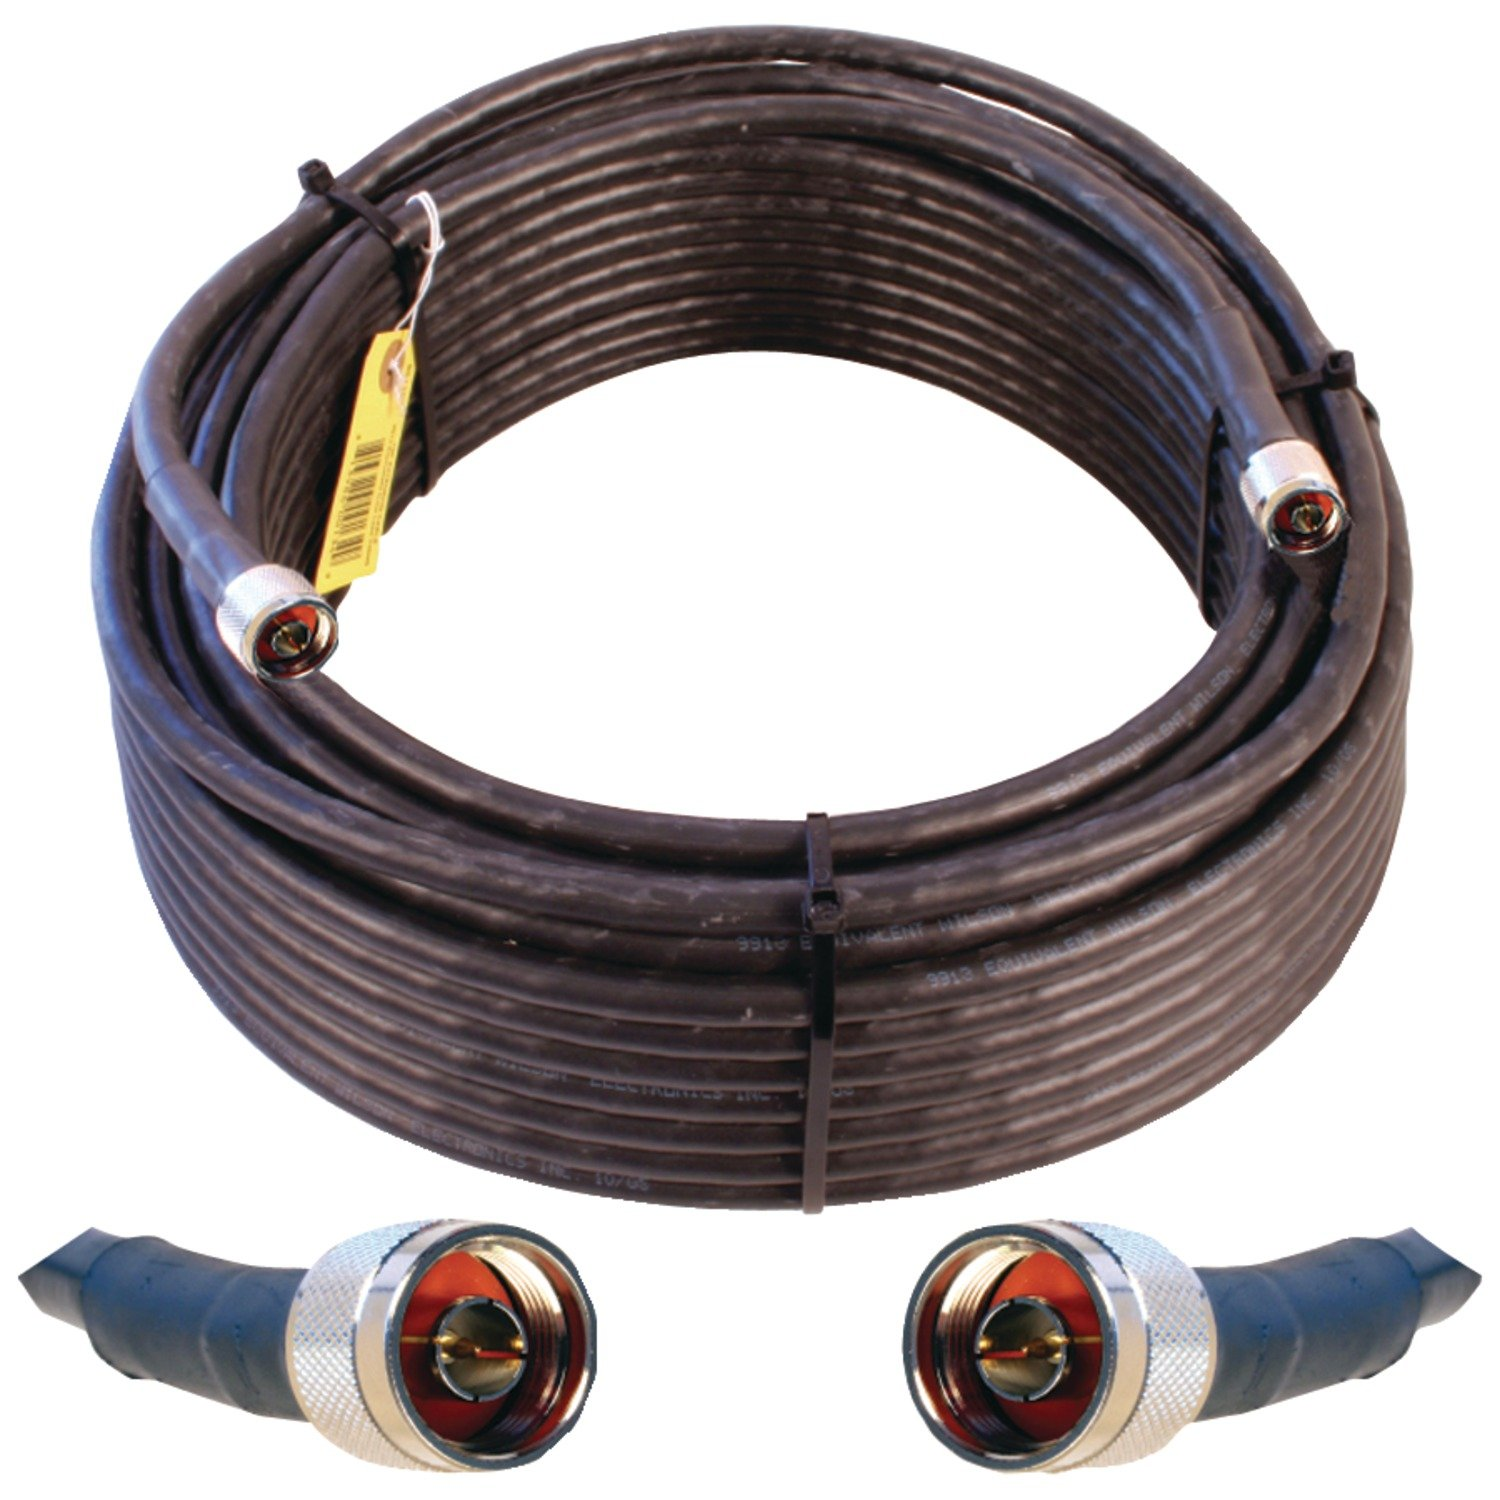 Wilson Electronics 952300 Ultra Low Loss Coaxial Cable, 100-Feet